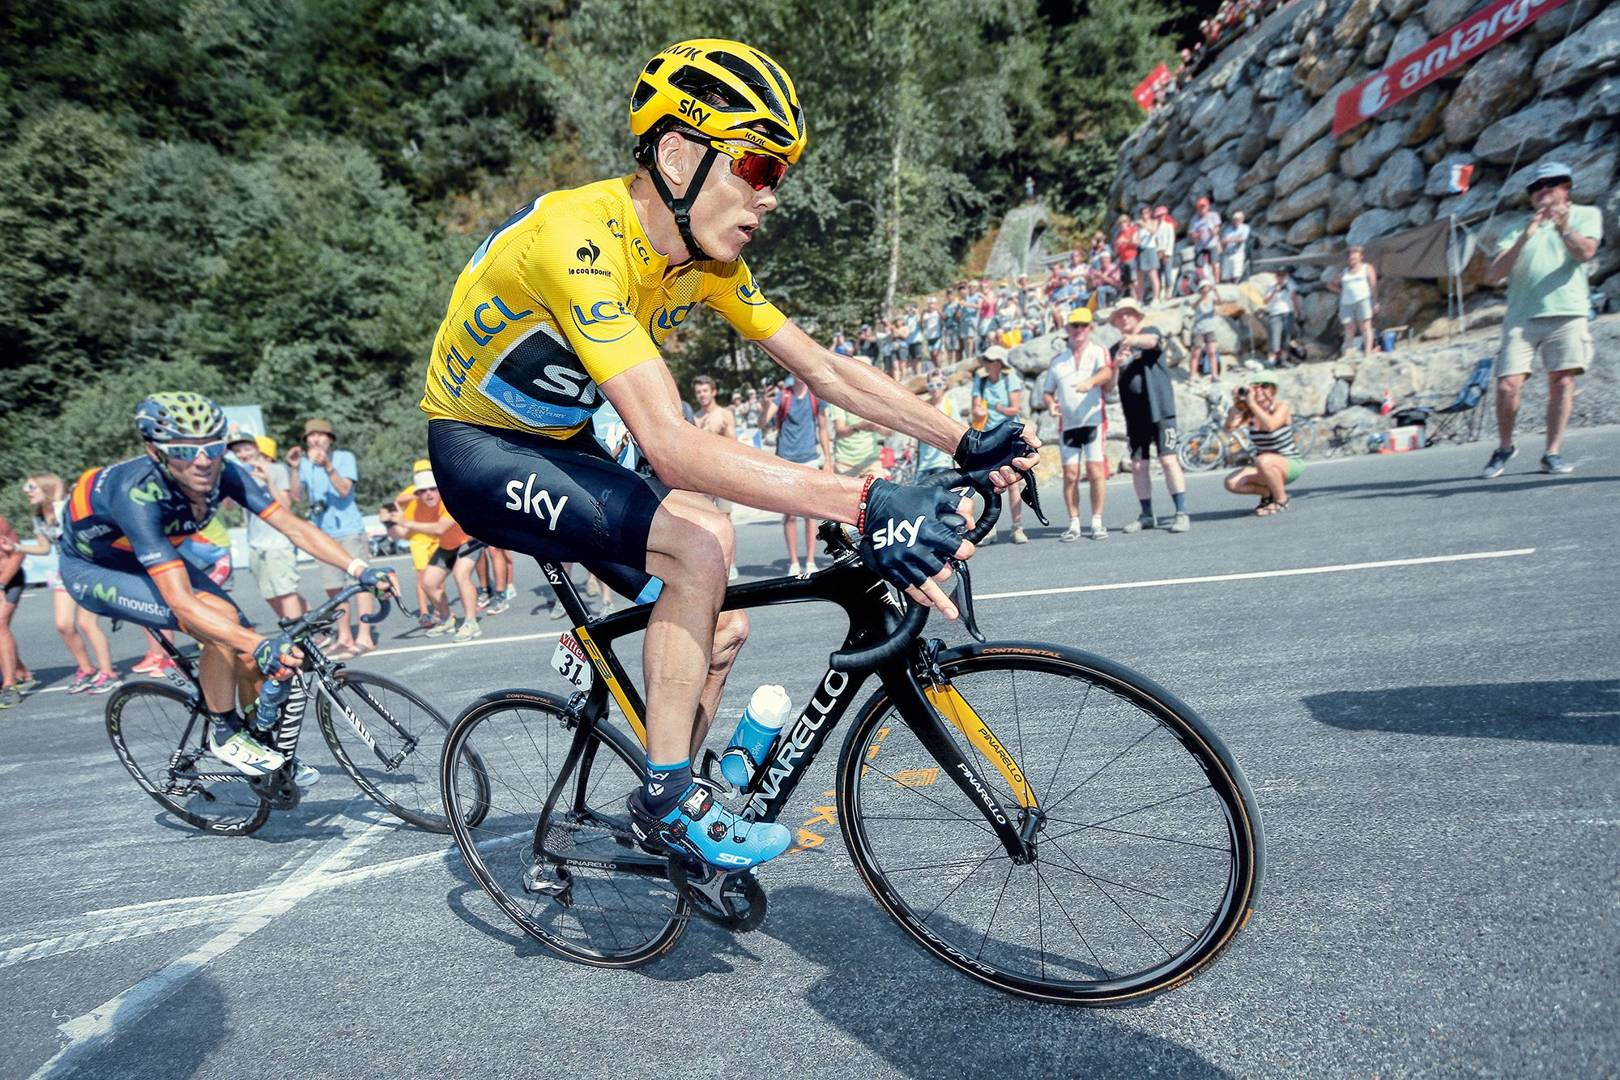 2fbdbaa8e Tour de France  WIRED uncovers the science behind Team Sky and Chris Froome